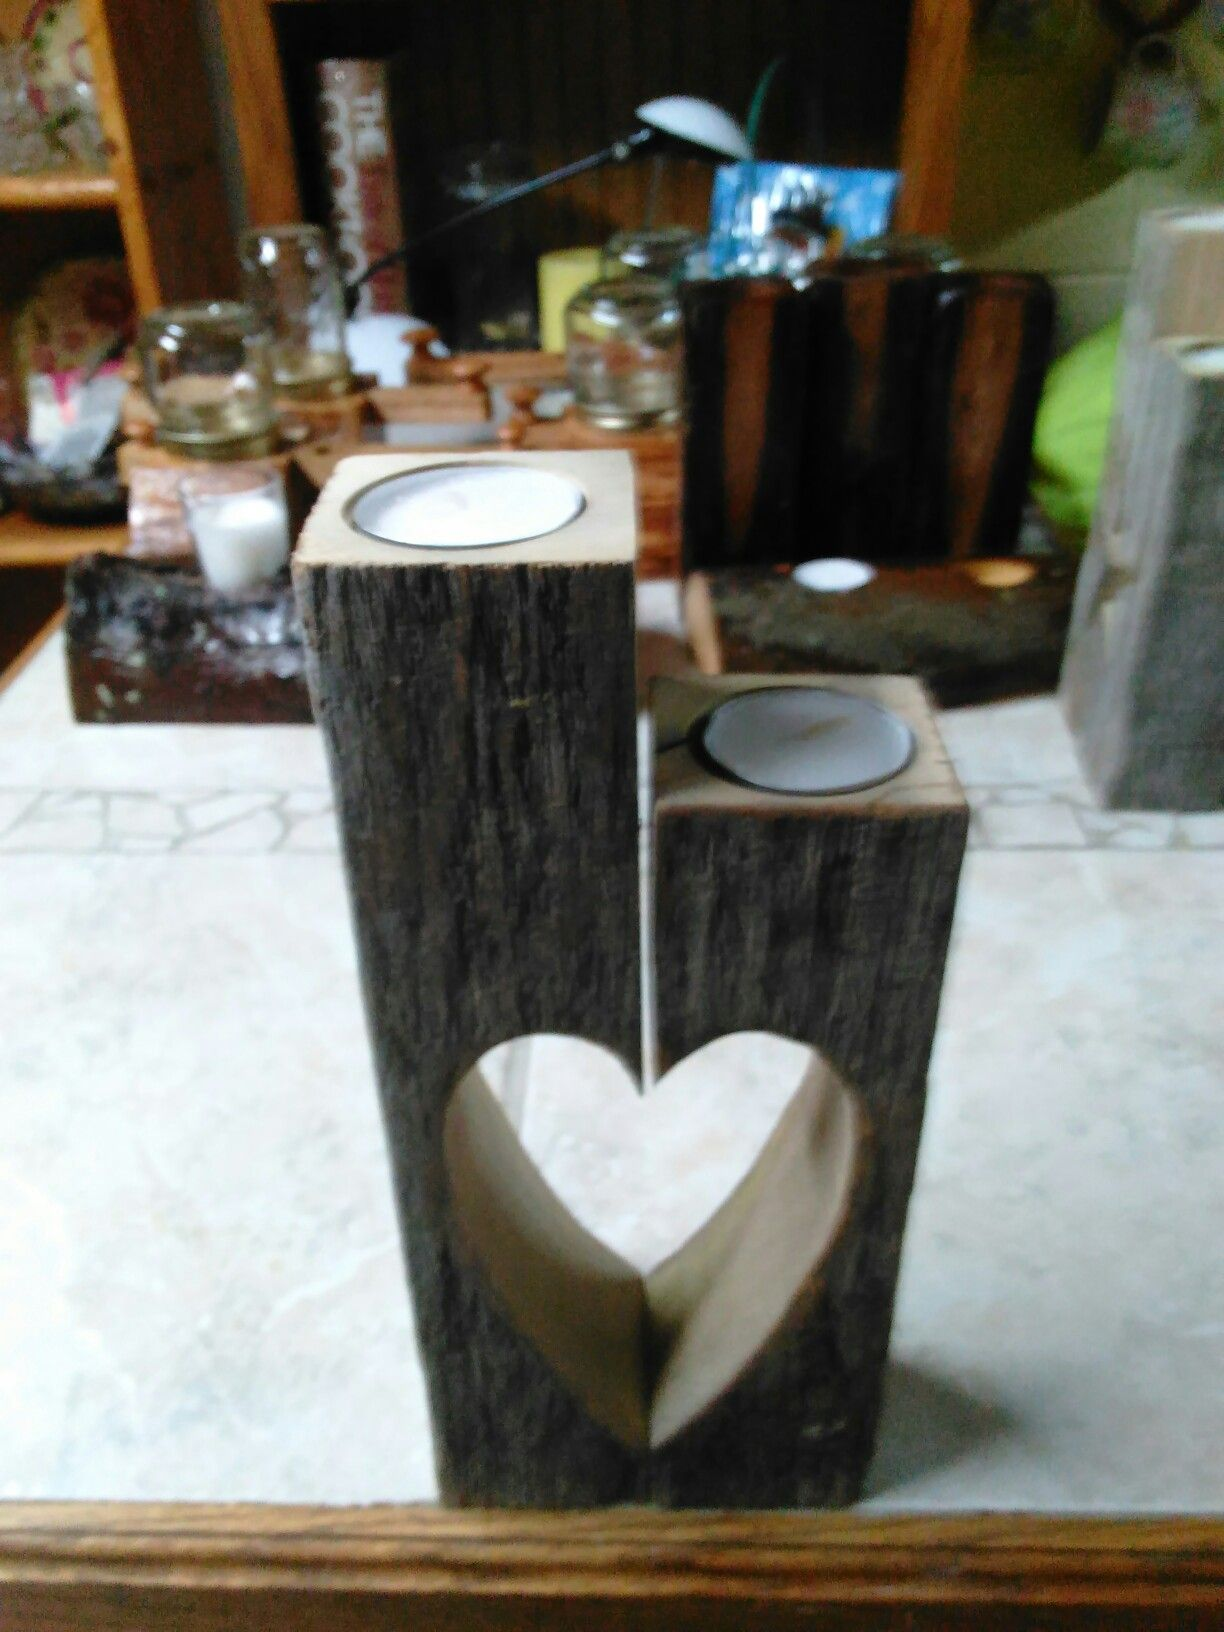 Wooden candle holders crafts - Weathered Wooden Candle Holder Heart Design